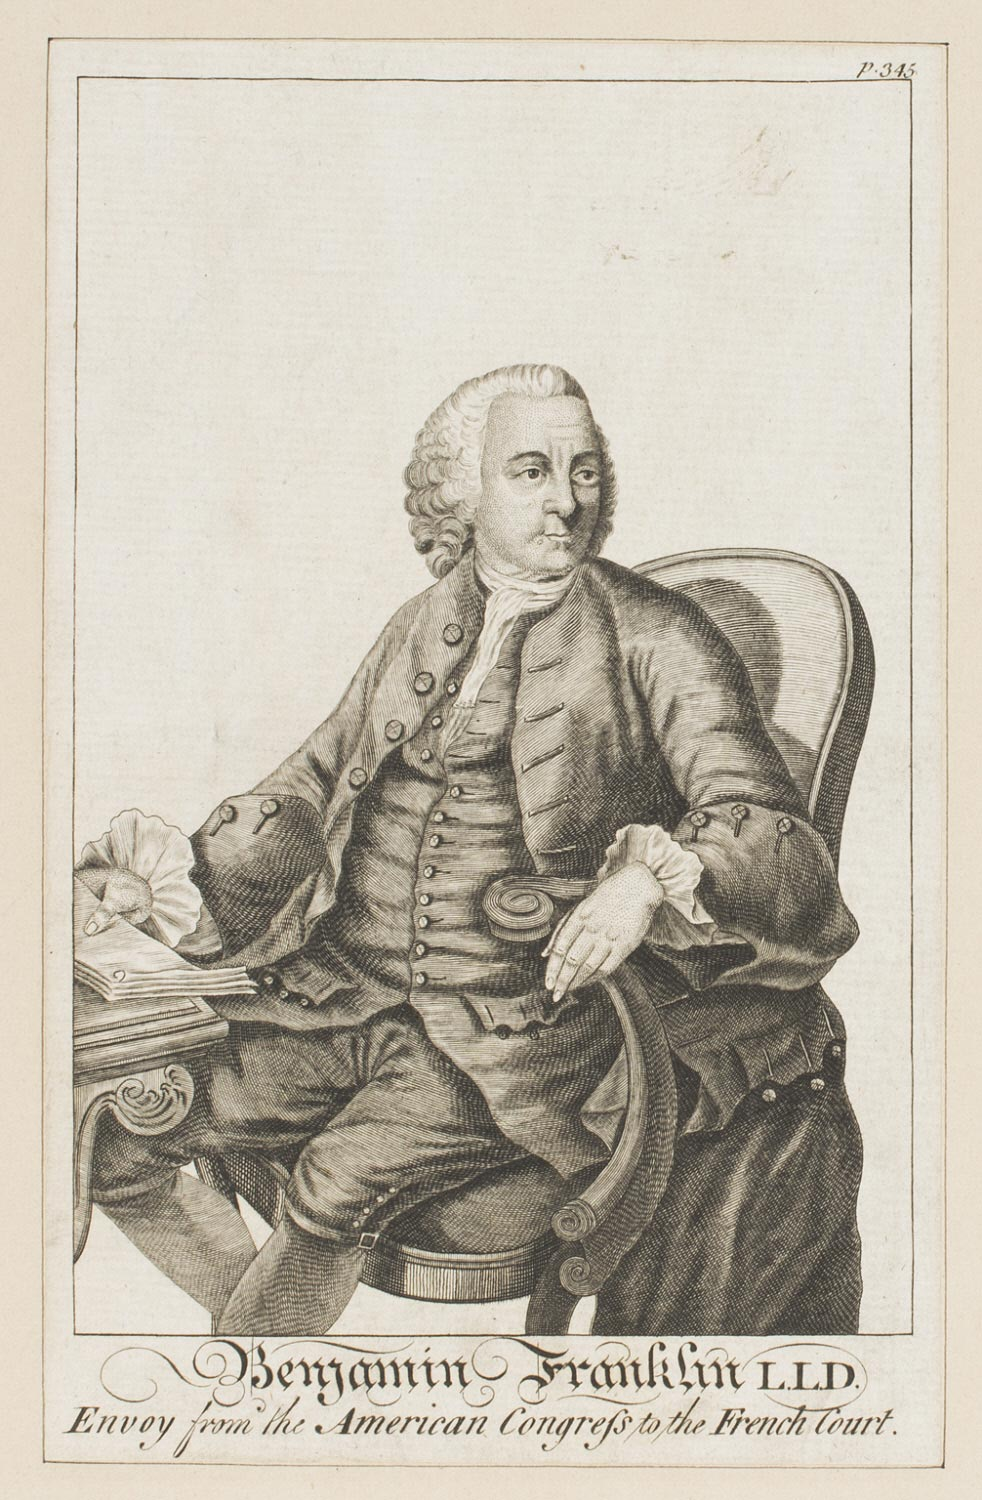 Benjamin Franklin L.L.D., Envoy from the American Congress to the French Court